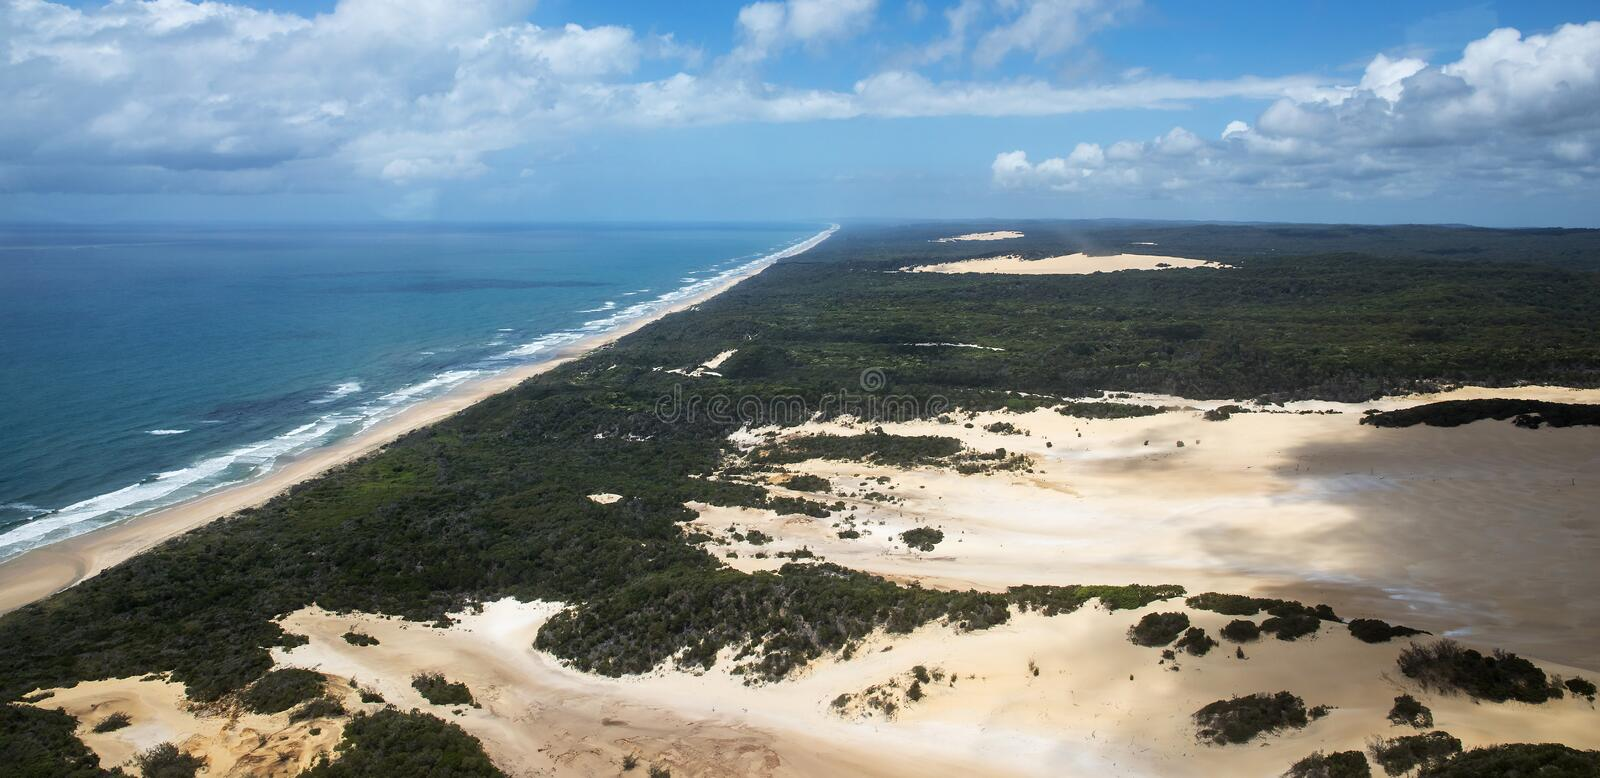 Aerial photo of Fraser Island. Aerial view of Fraser Island Queensland, Australia. With 75 mile beach and big sandbanks in the view. Taken on a sunny day with stock images